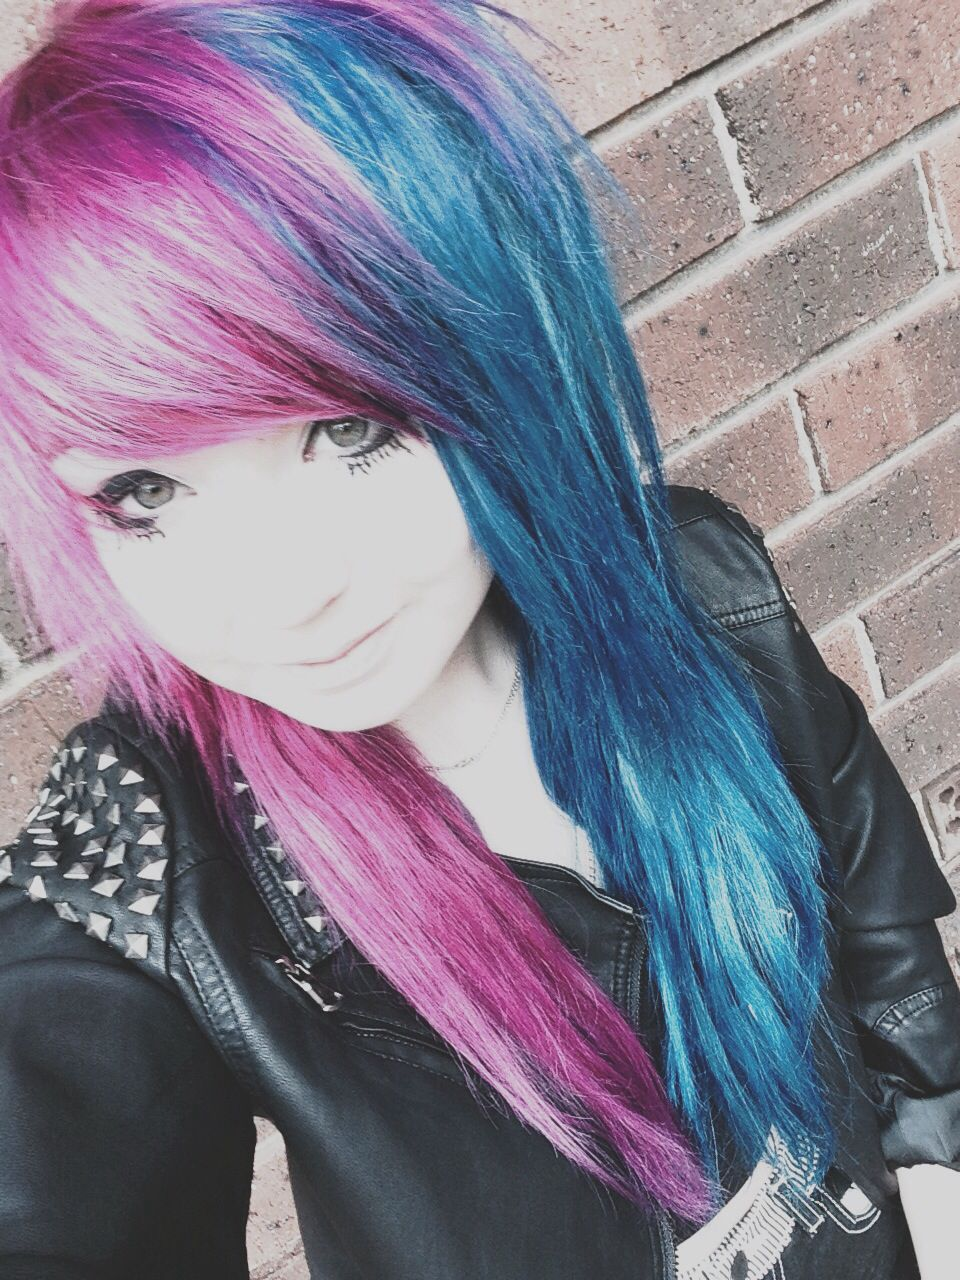 Pin by matt brown on scene pinterest blue hair emo and scene